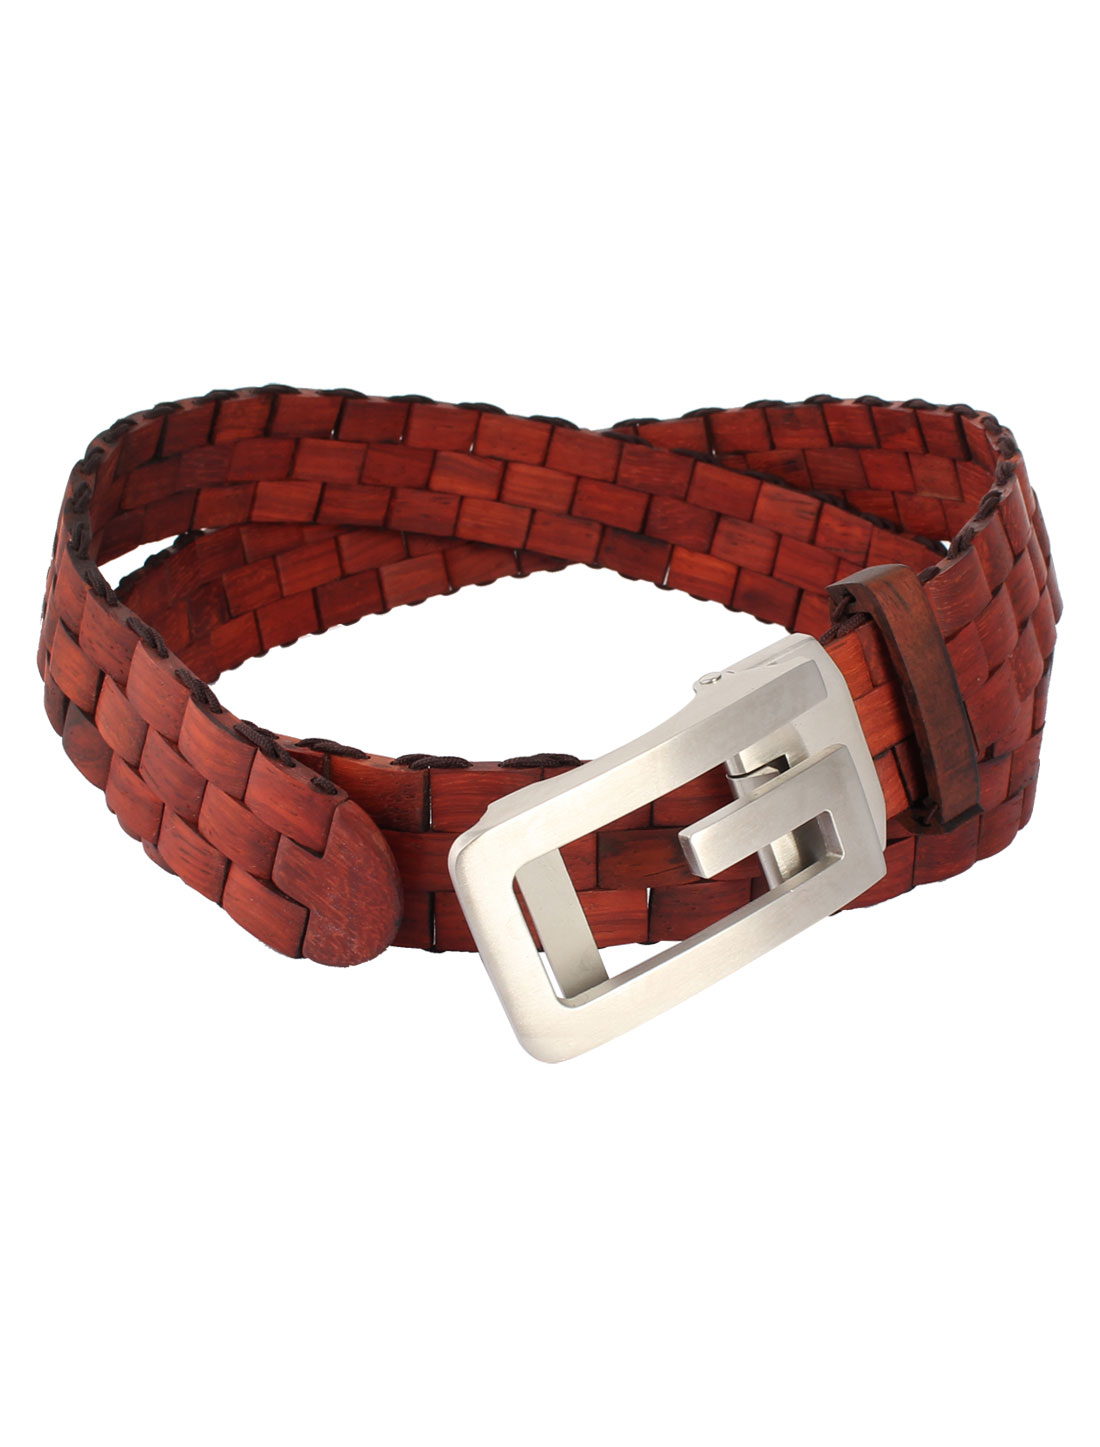 Wooden Belt Stainless Steel G Shape Buckle Waist Belt Burgundy for Man